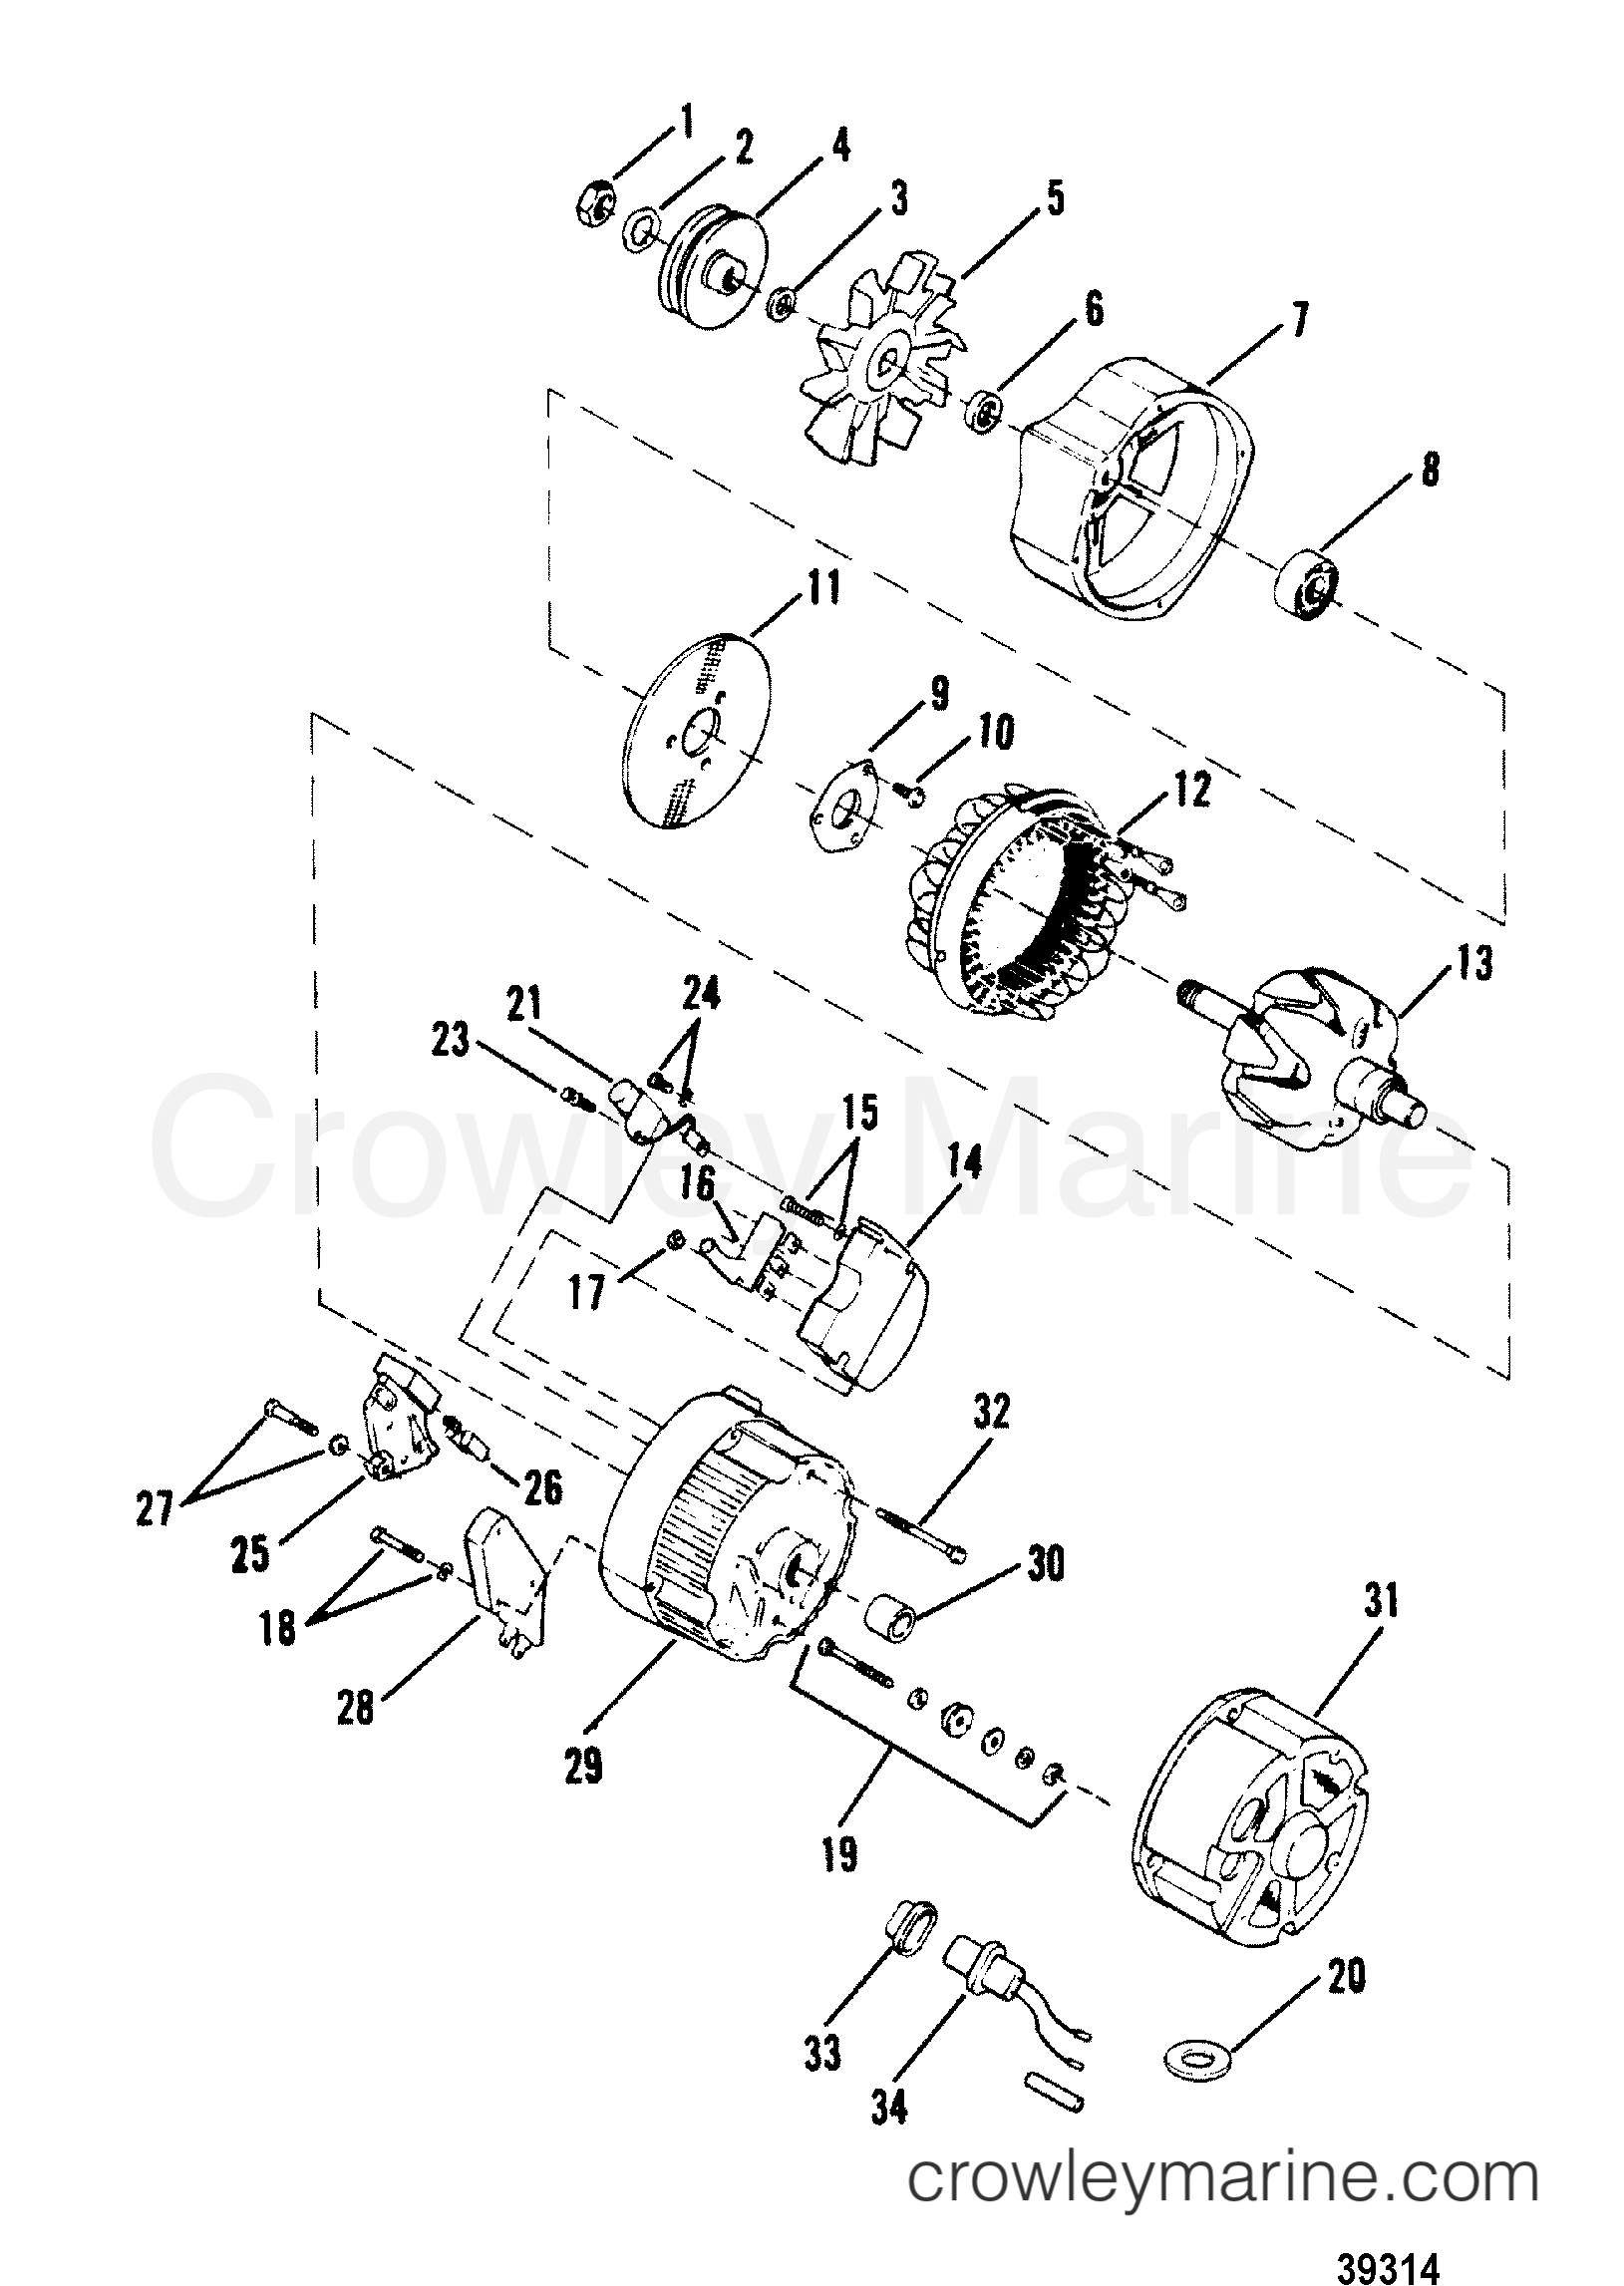 hight resolution of alternator delco remy 1105064 1988 mercruiser 3 0l delco remy alternator wiring schematic delco remy 22si alternator wiring diagram